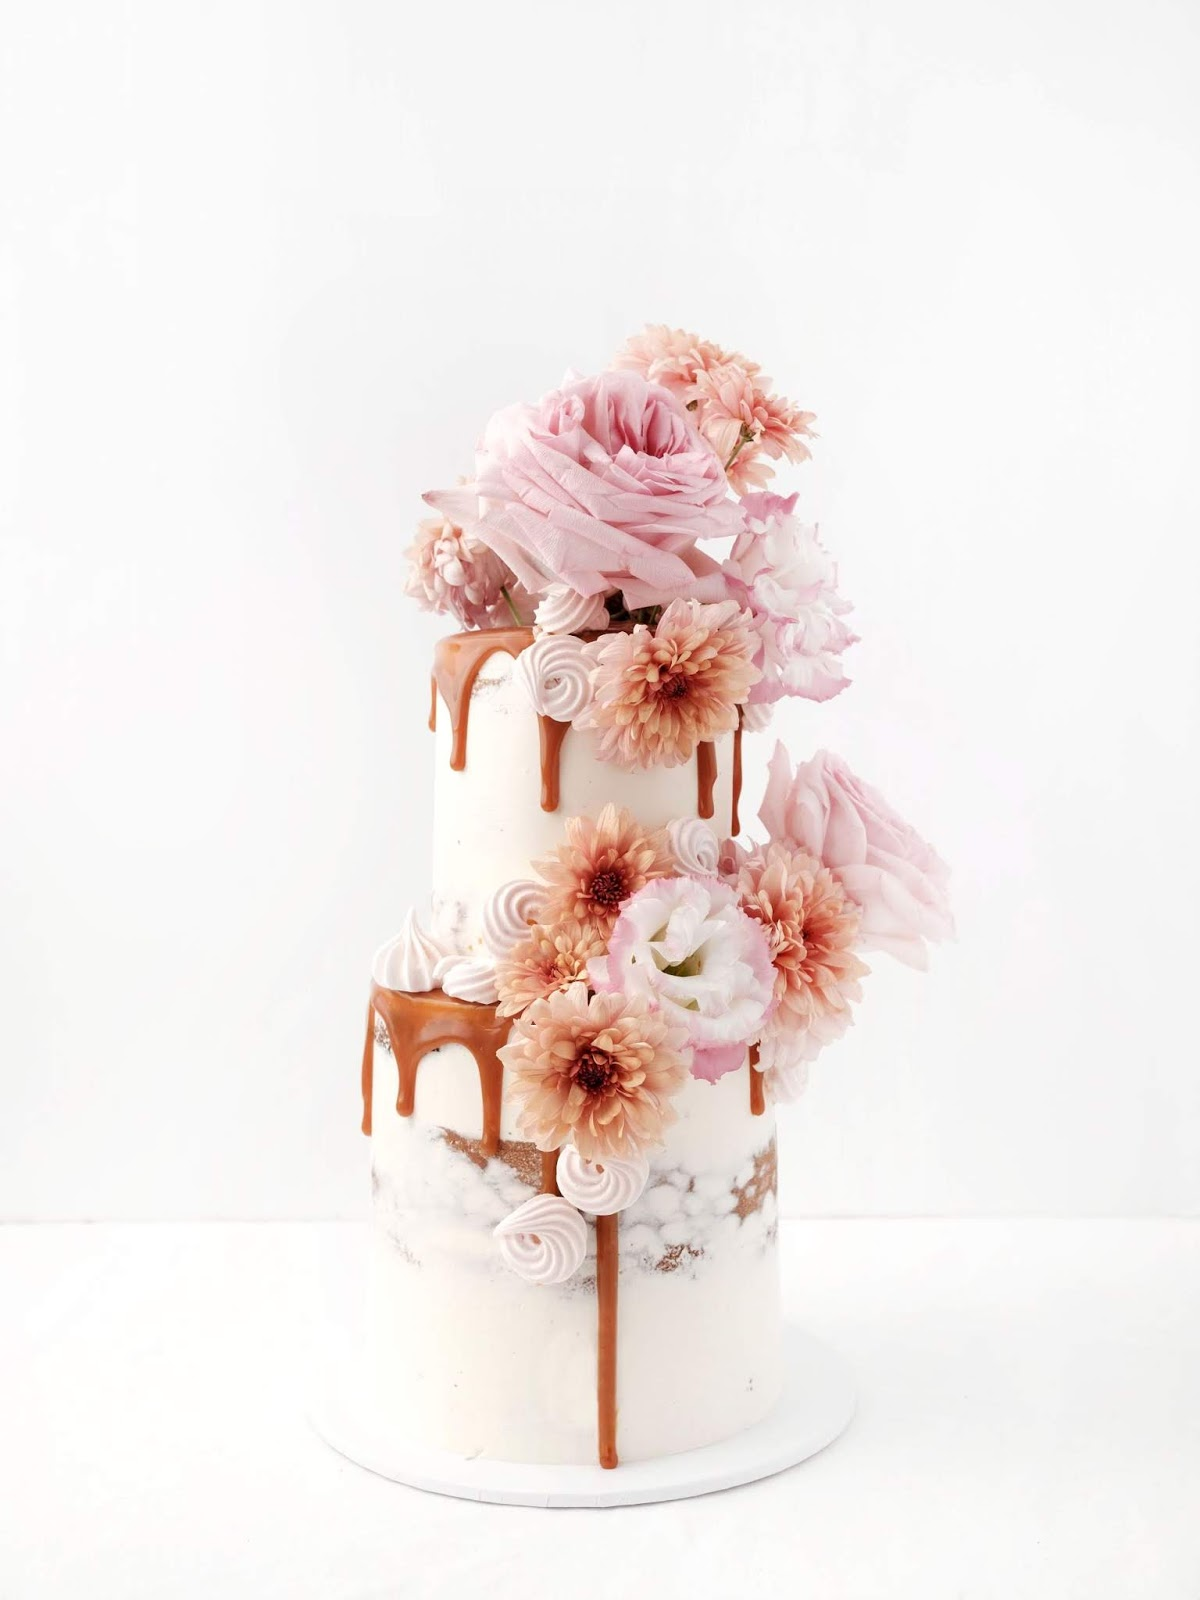 sunshine coast wedding cake designer jasmine dowling photography cake desserts